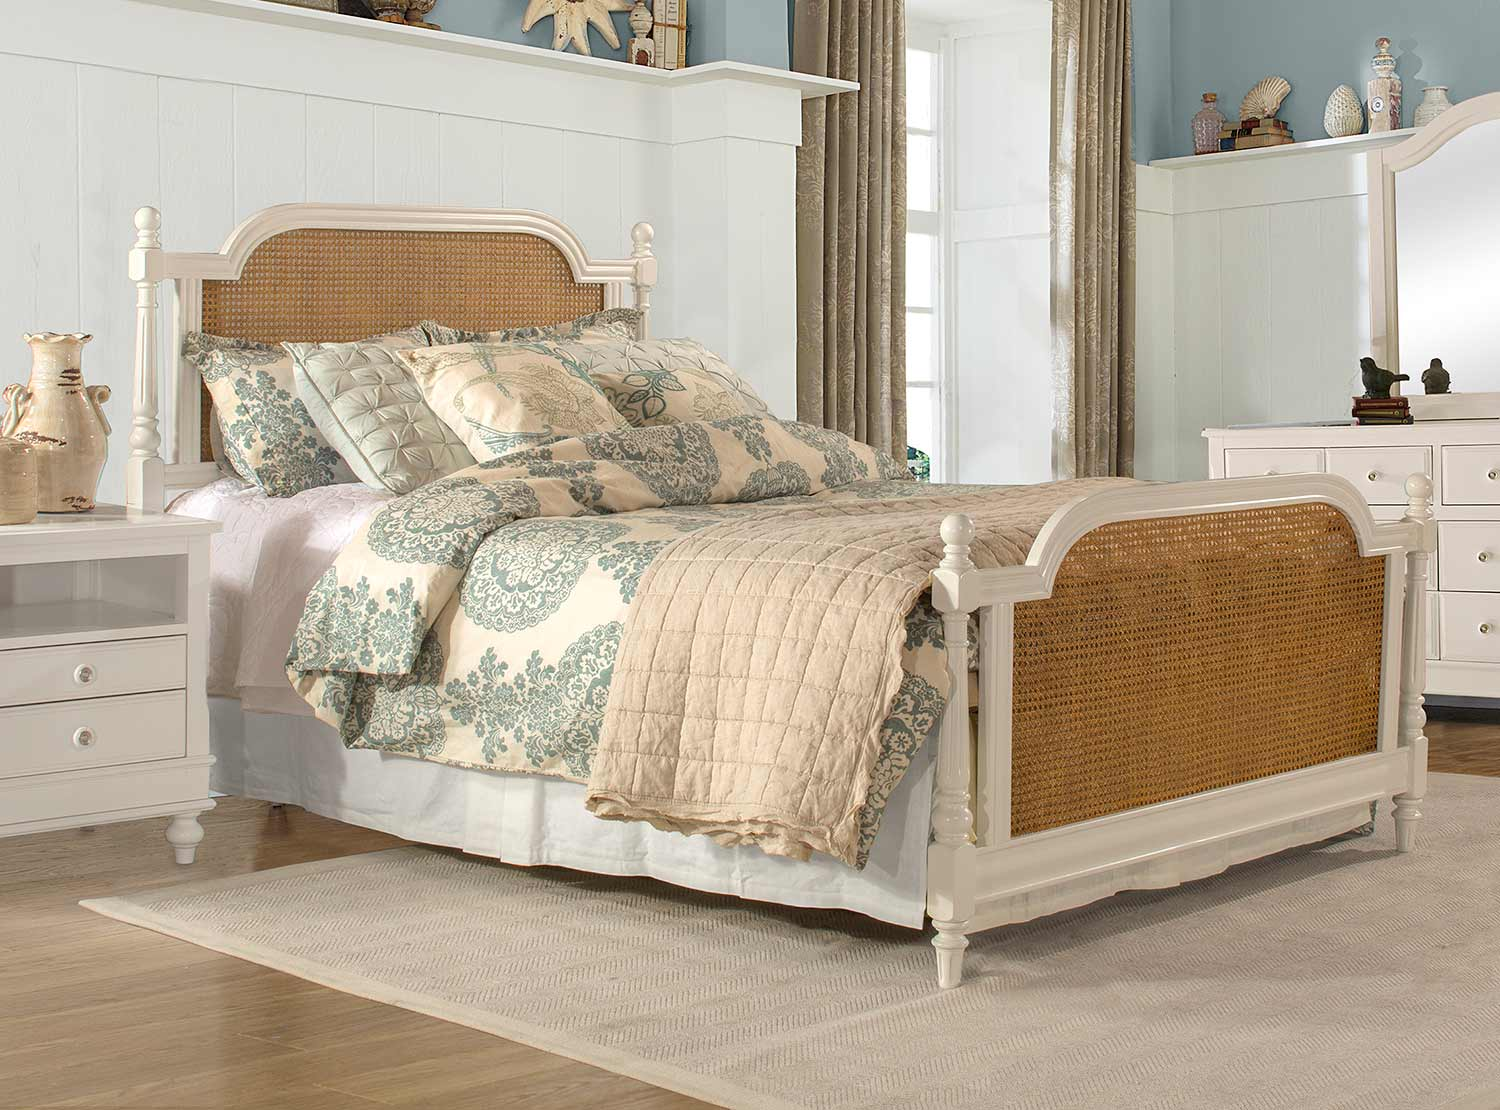 Hillsdale Melanie Metal Bed - White